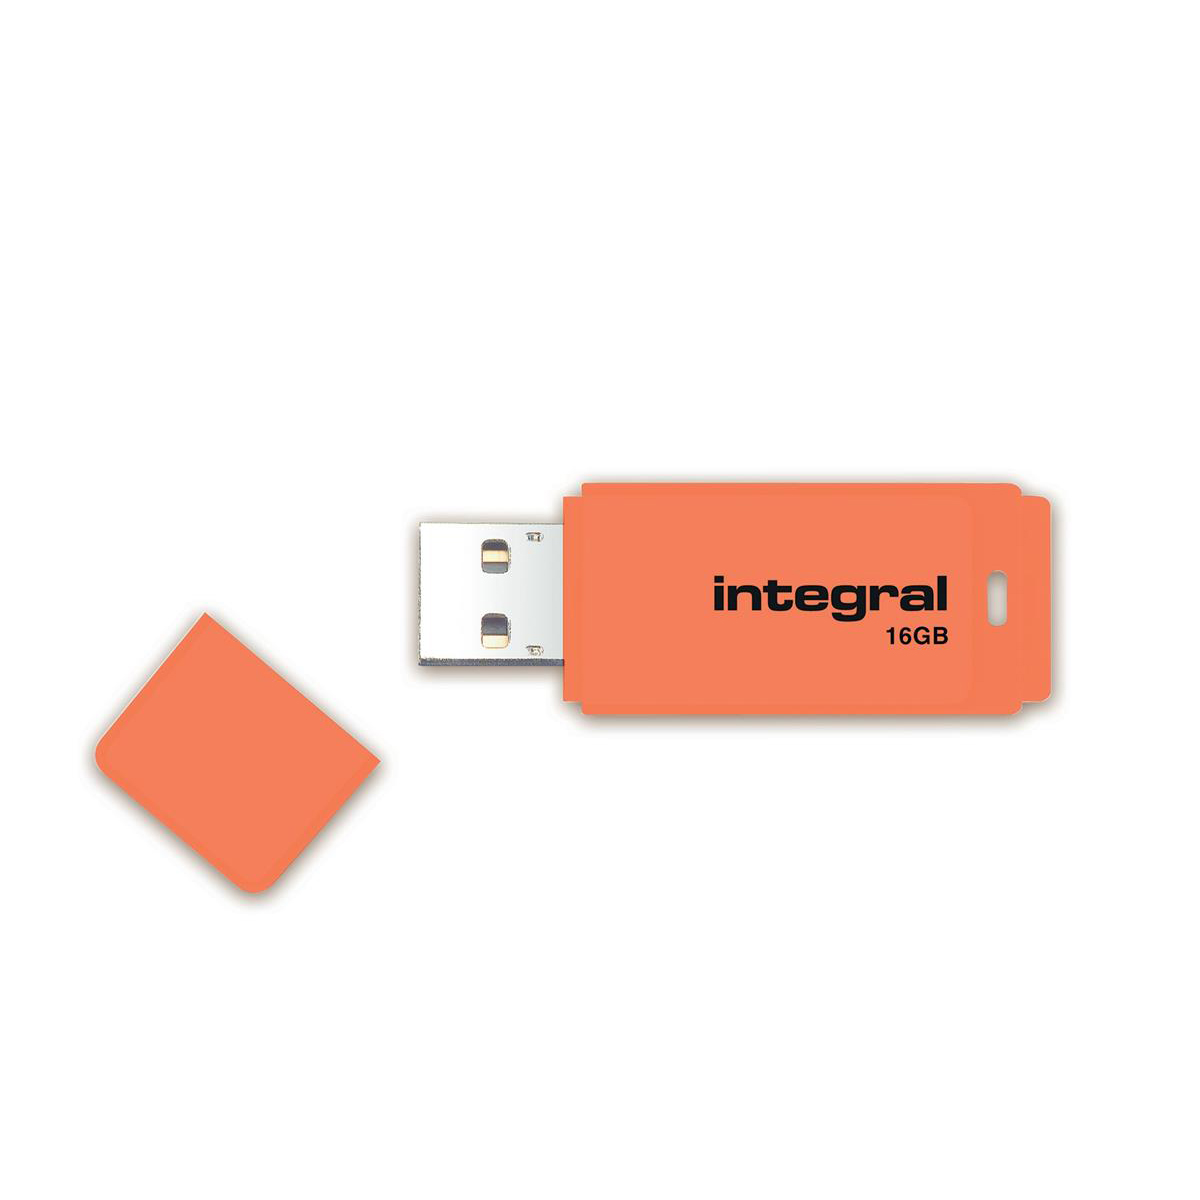 Memory Sticks Integral Neon USB Drive 2.0 Capacity 16GB Orange Ref INFD16GBNEONOR